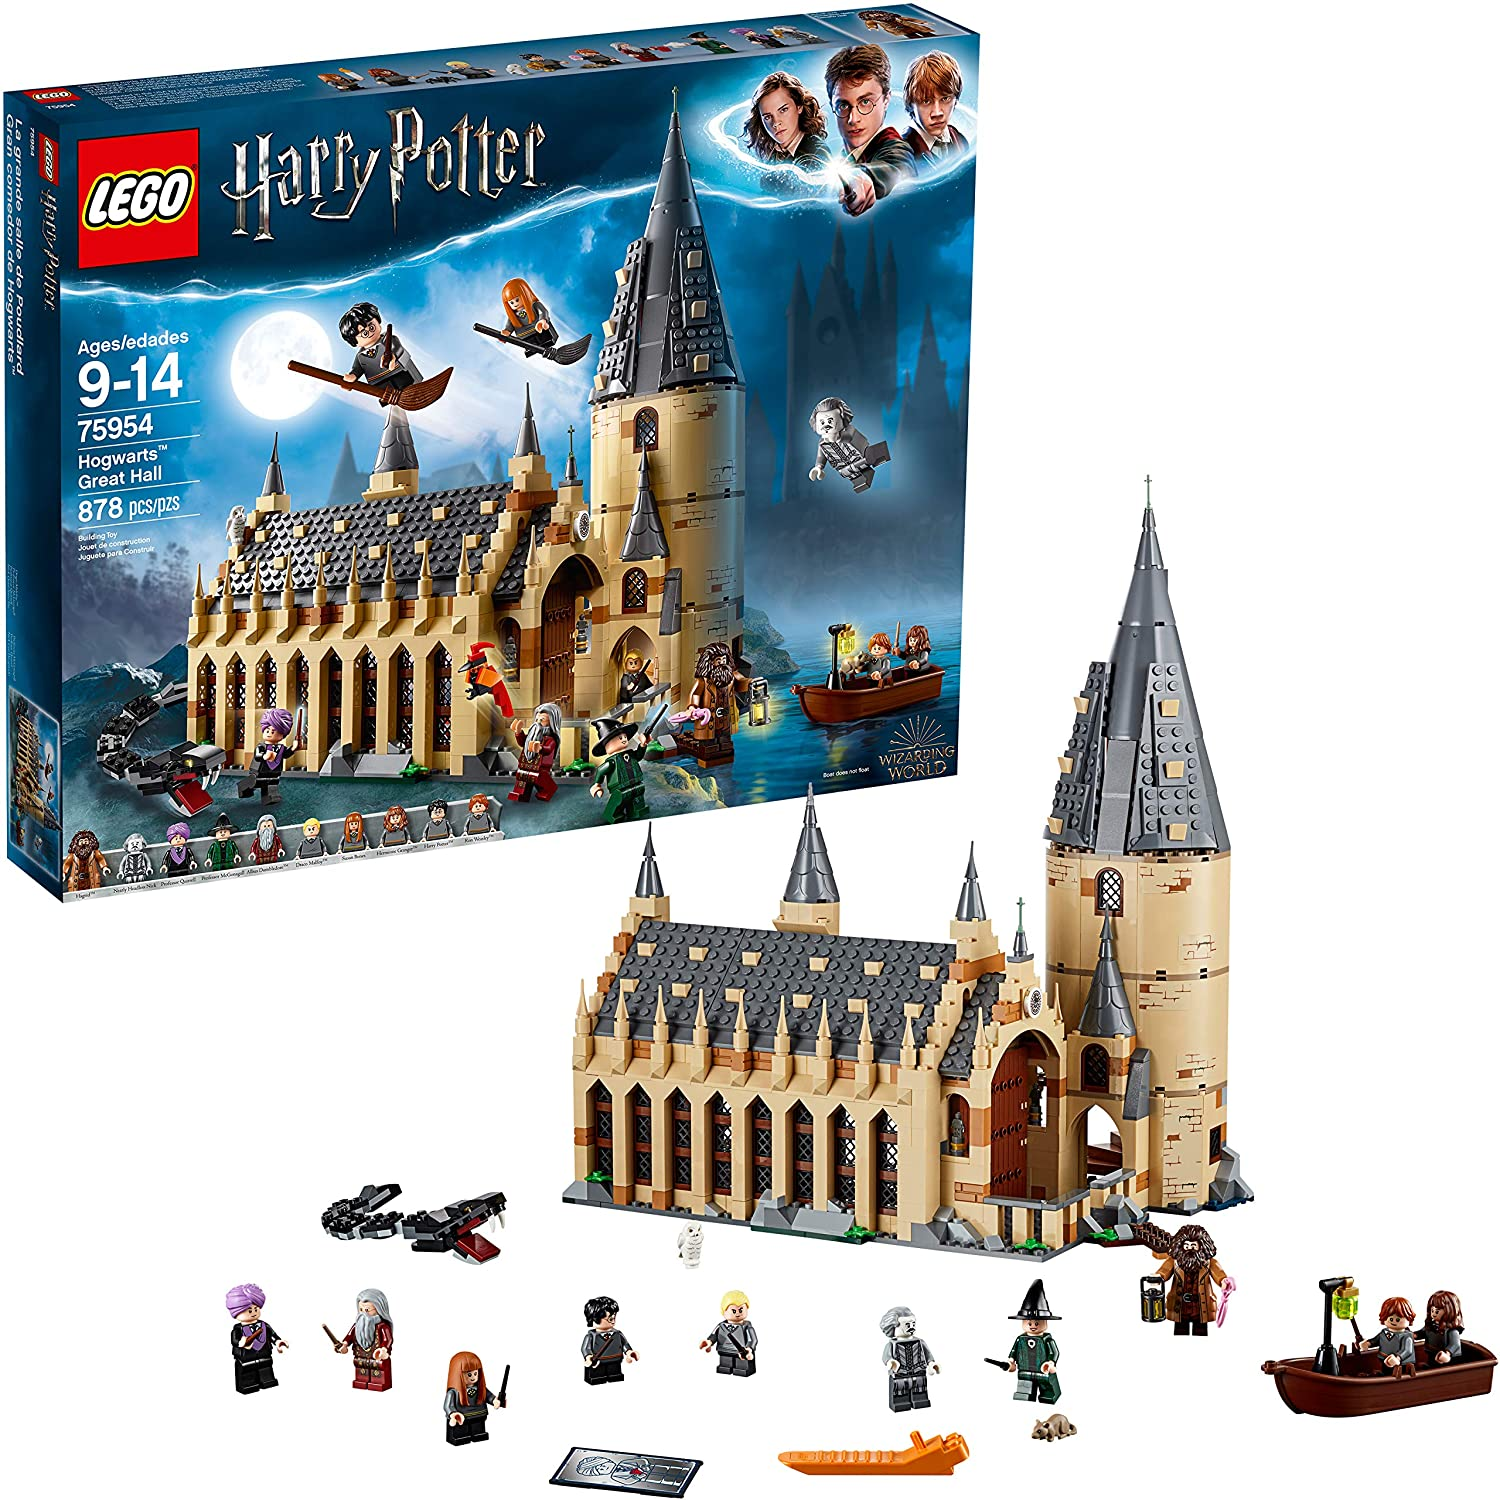 gifts-for-9-year-old-boys-harry-potter-lego